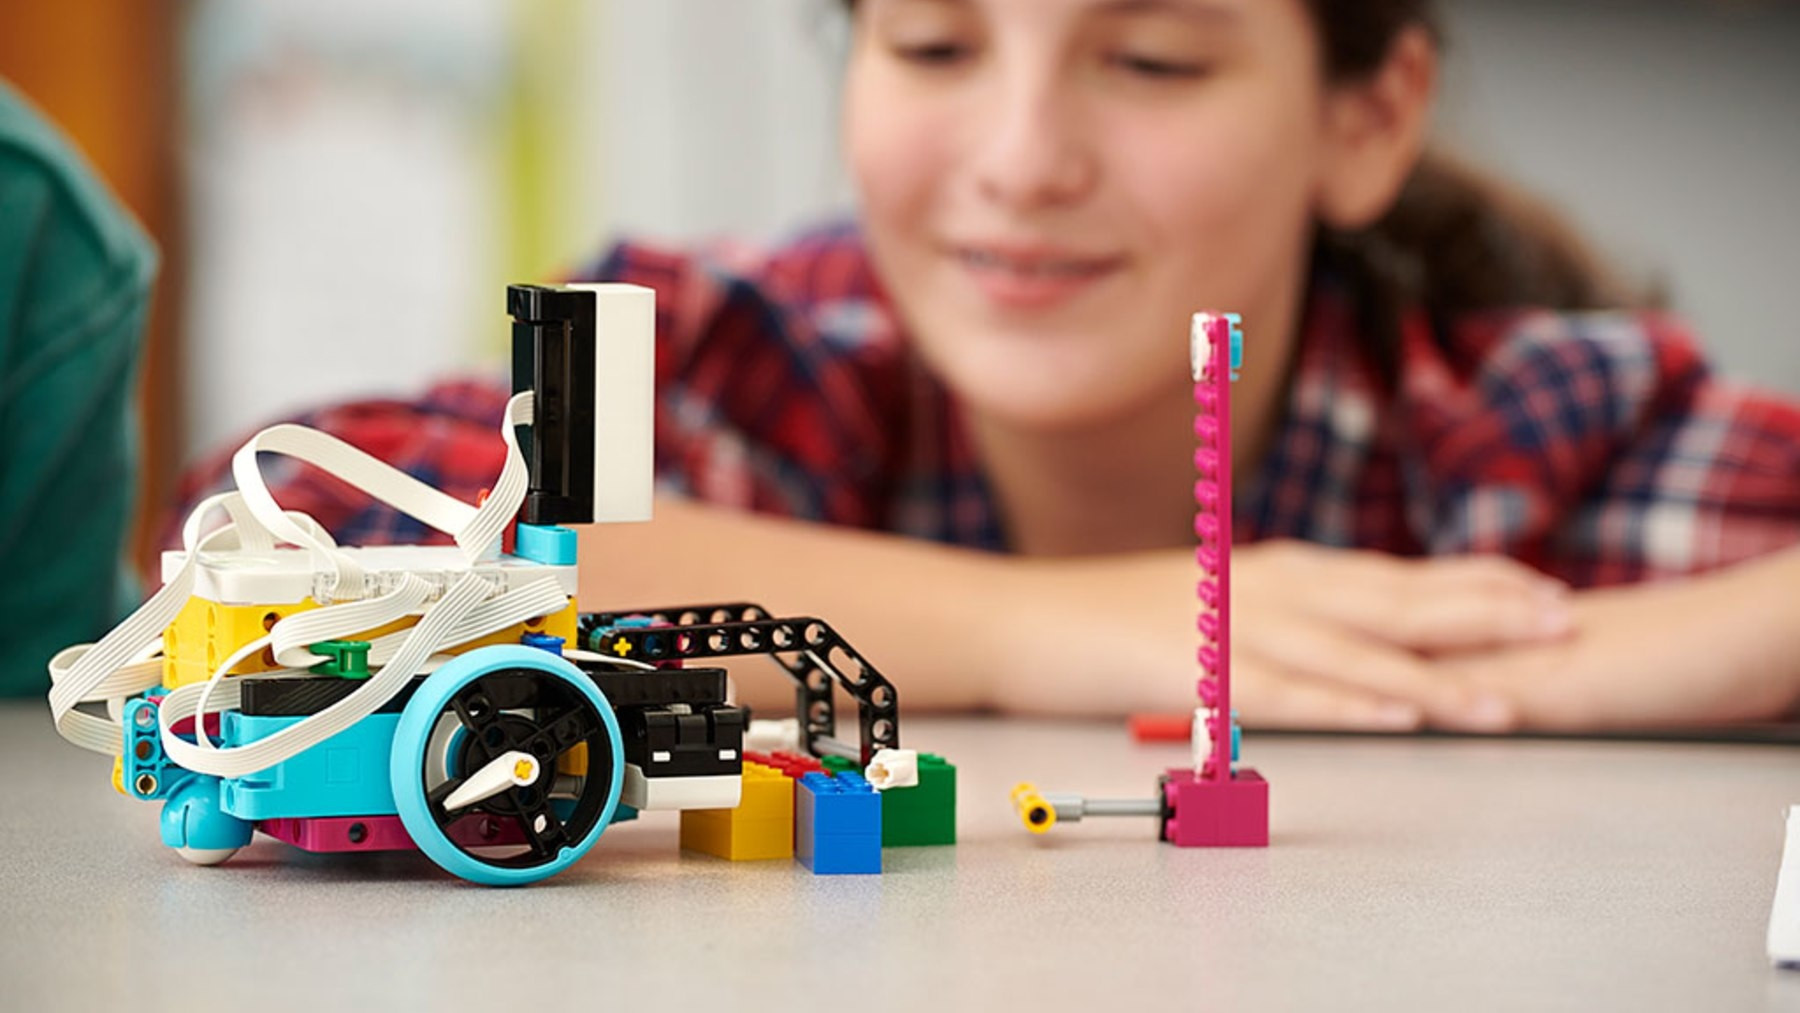 Spike Prime: New programmable robot kit from Lego Education